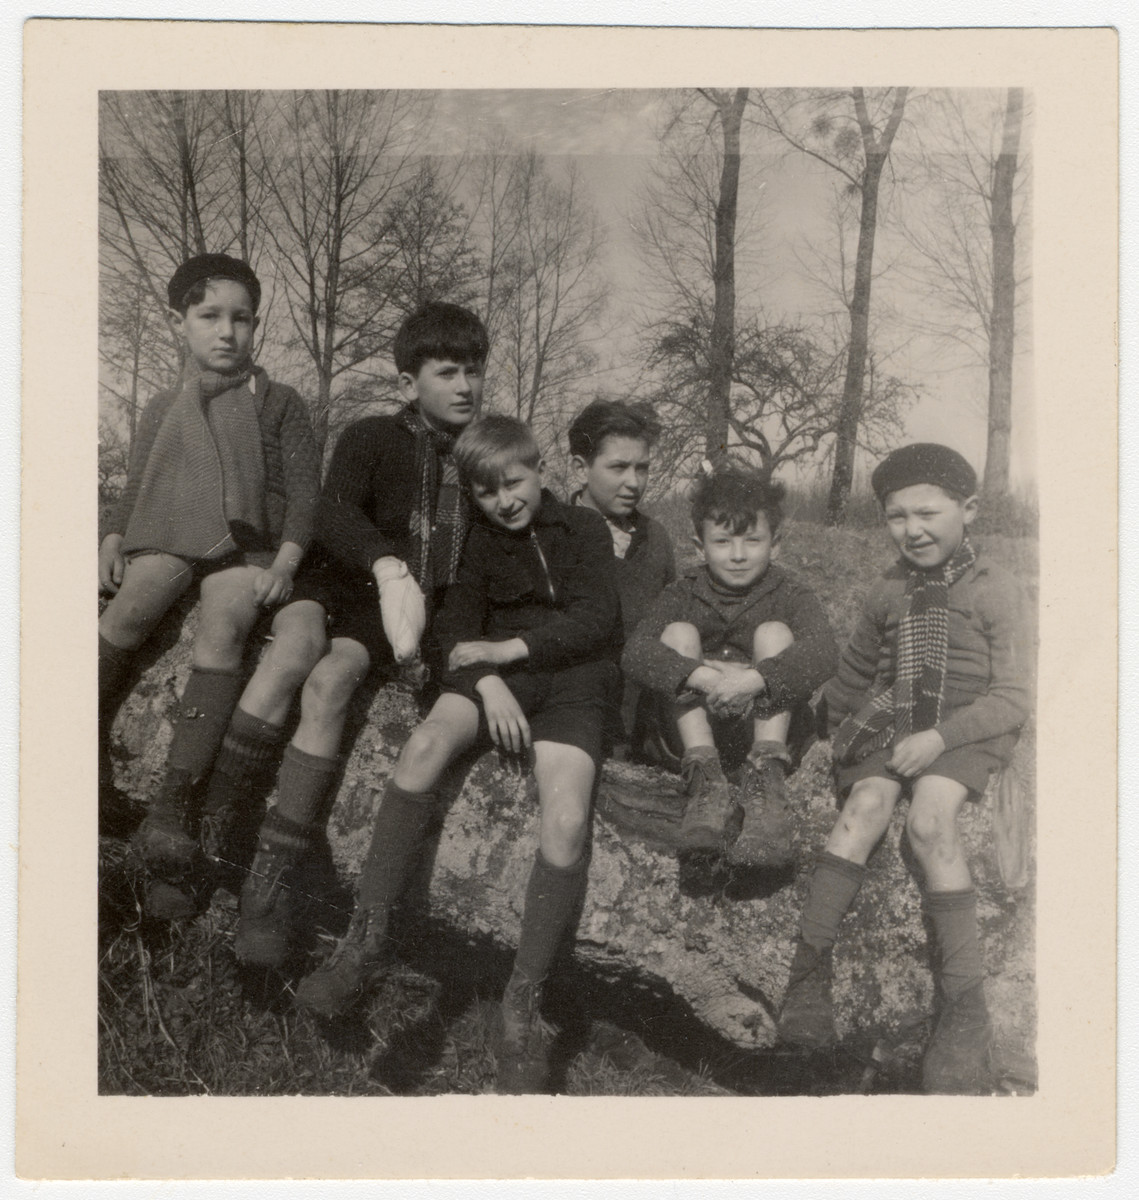 A group of Jewish children evacuated from Paris by the Quakers, outside of the Quaker boarding home, Moulin de la Ferriere, in Noce, Normandy, in early 1940. Steven Simon is the first one at left.